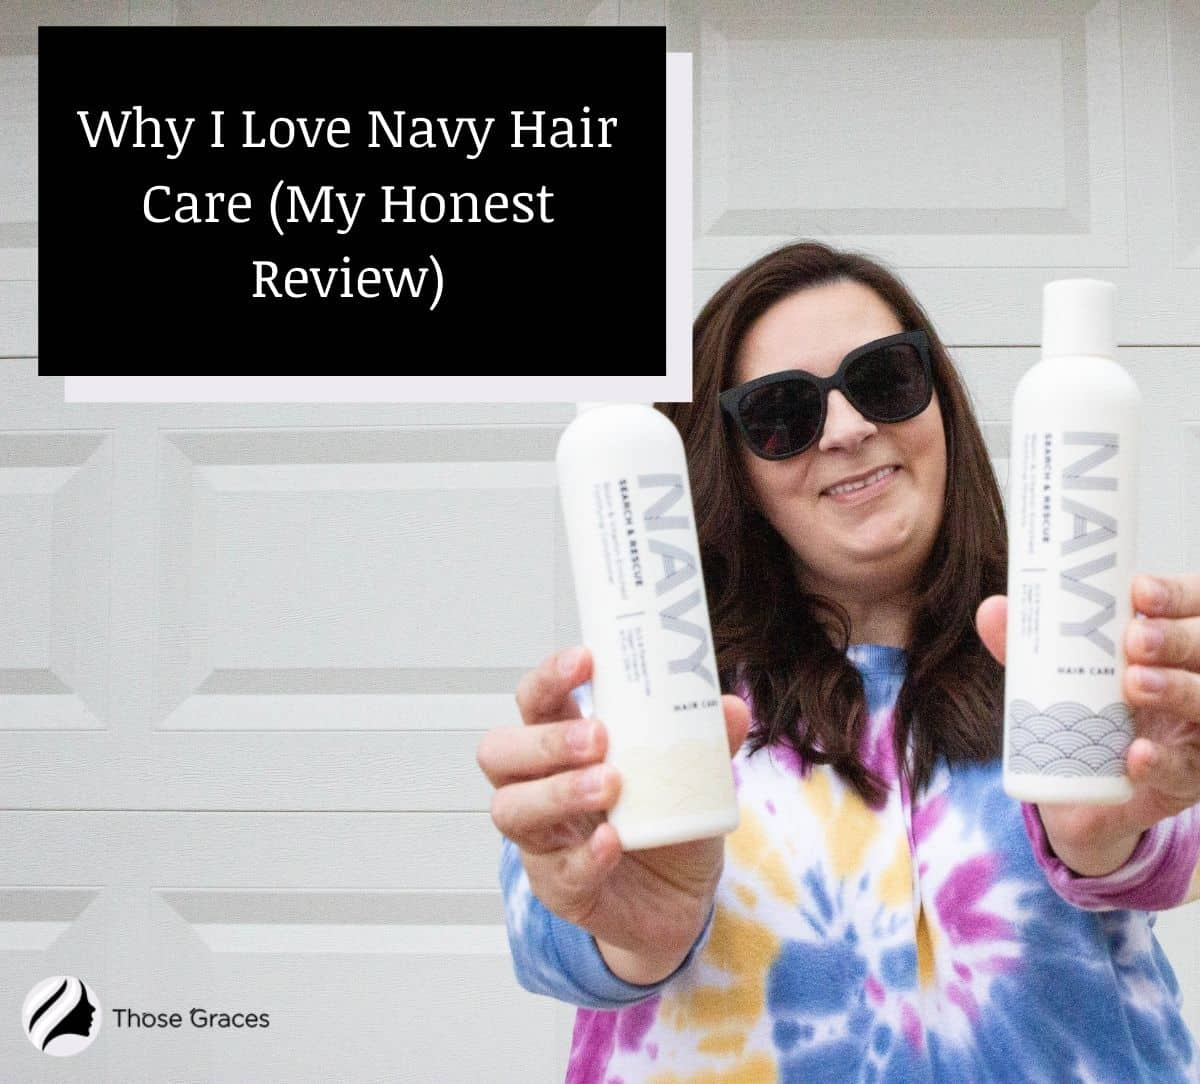 a pretty woman showing Navy hair care products for her Navy hair care review